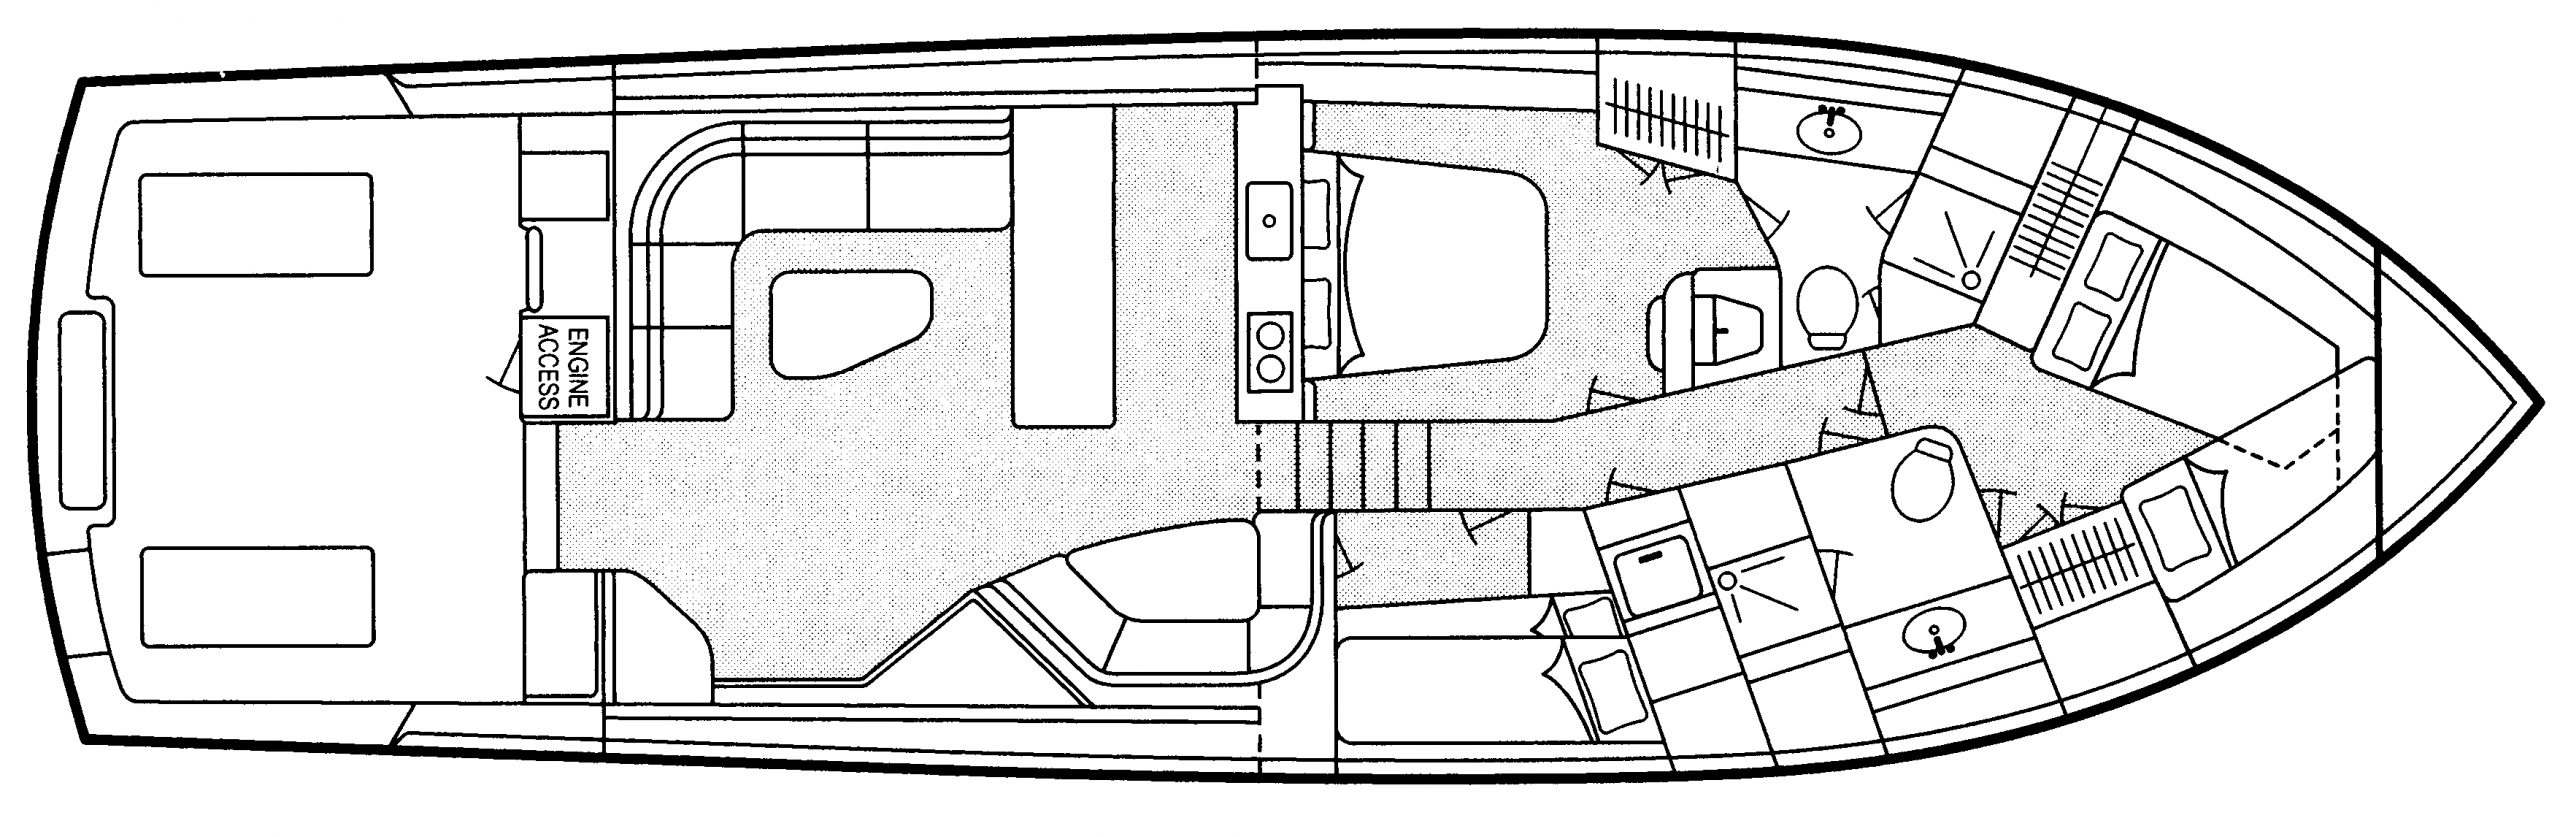 56 Convertible Floor Plan 1